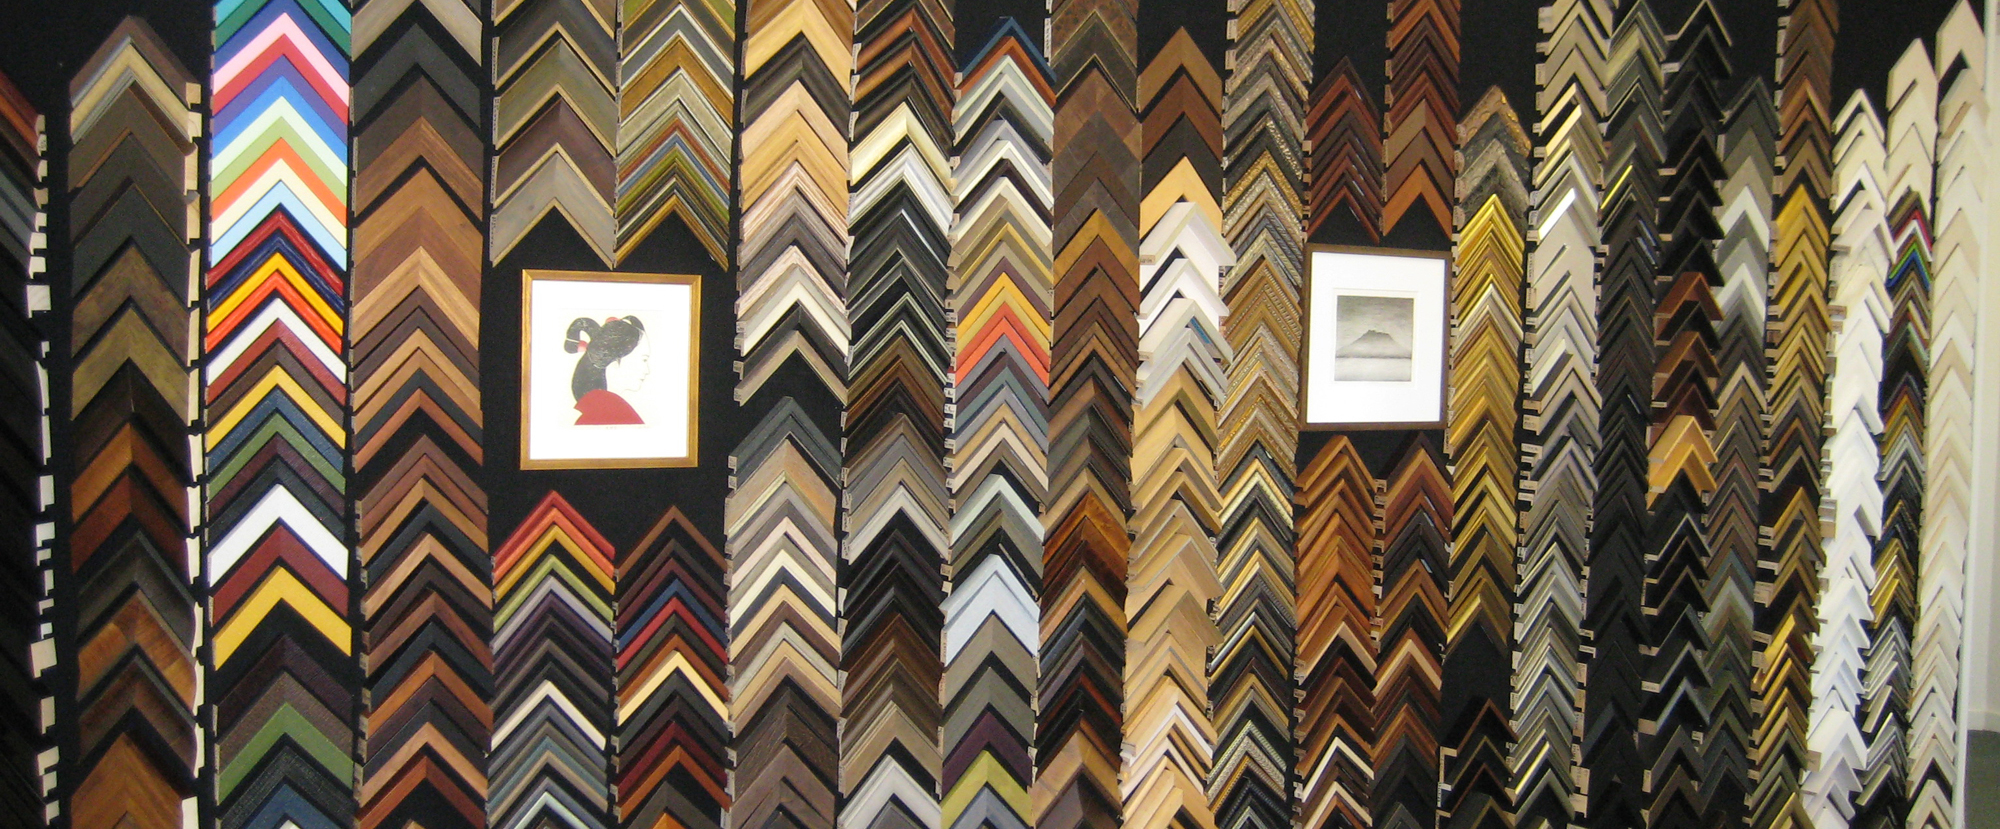 Framing services Honolulu, HI – Pacific Gallery & Frames